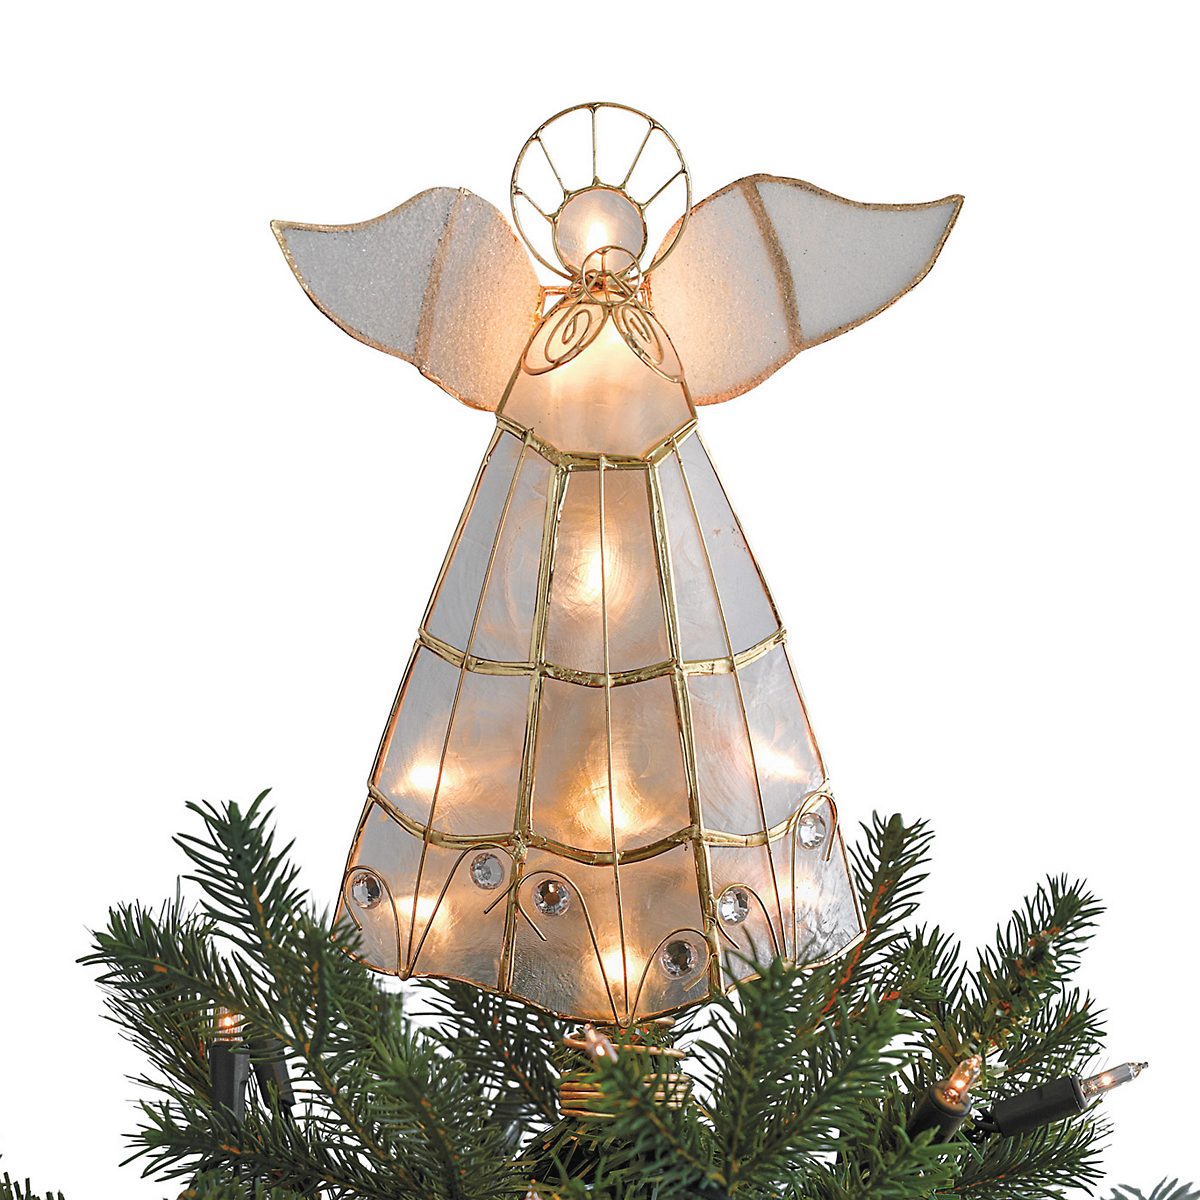 Illuminated Angel Christmas Tree Topper Gump's - Christmas Tree Angel Toppers